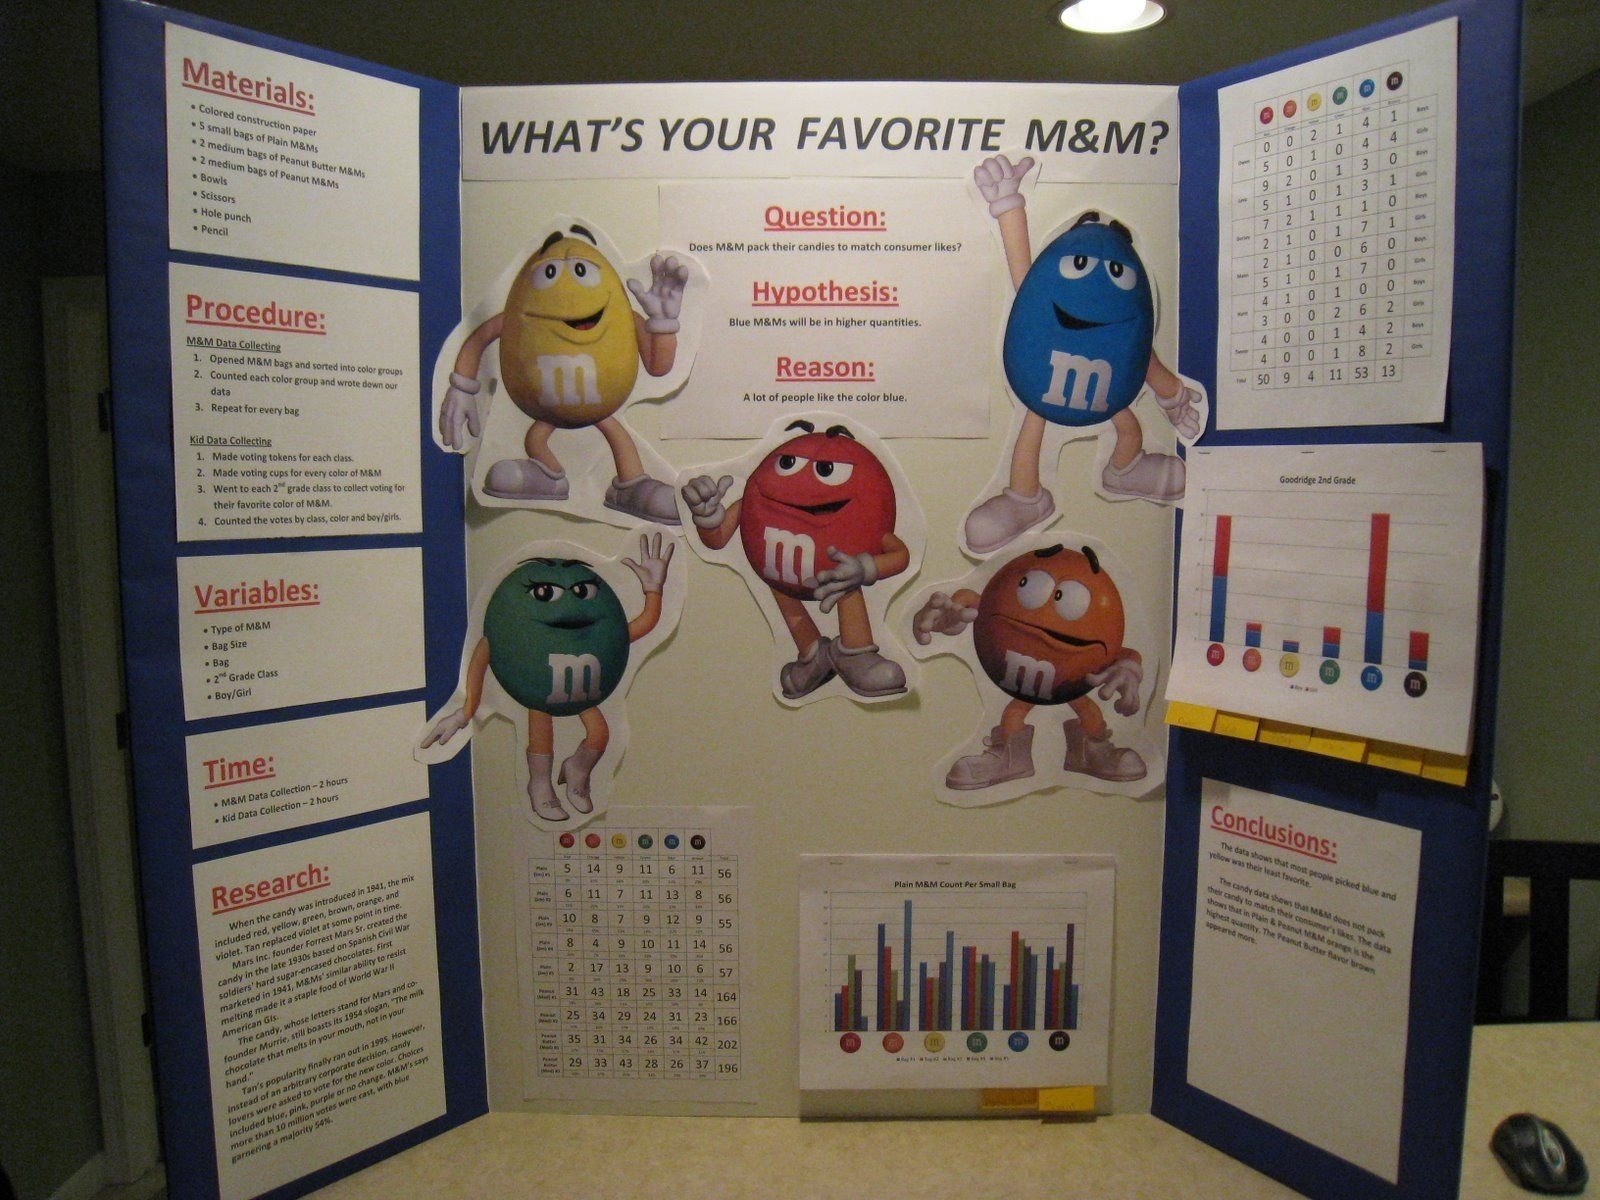 10 Awesome Second Grade Science Fair Project Ideas 5th grade quick science fair projects homeshealth 5 2020